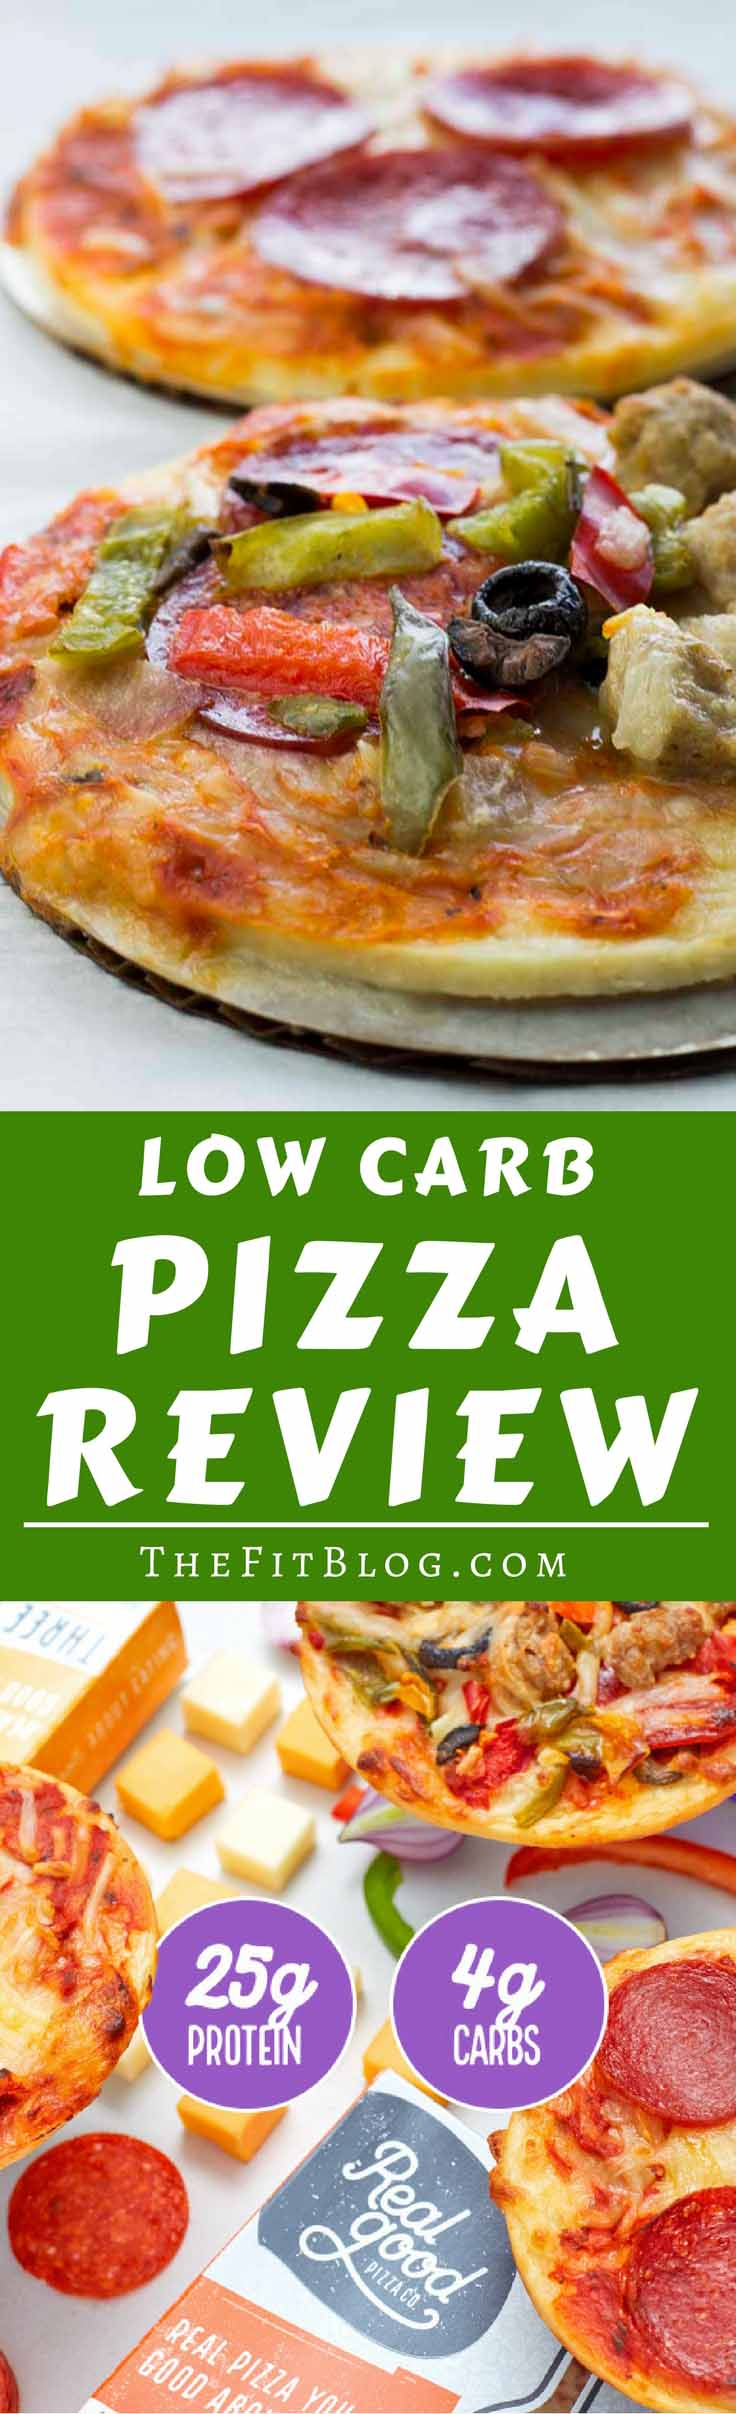 Can you really get a low-carb pizza that tastes great and is made from healthy ingredients? Yes, now you can and it's awesome!!